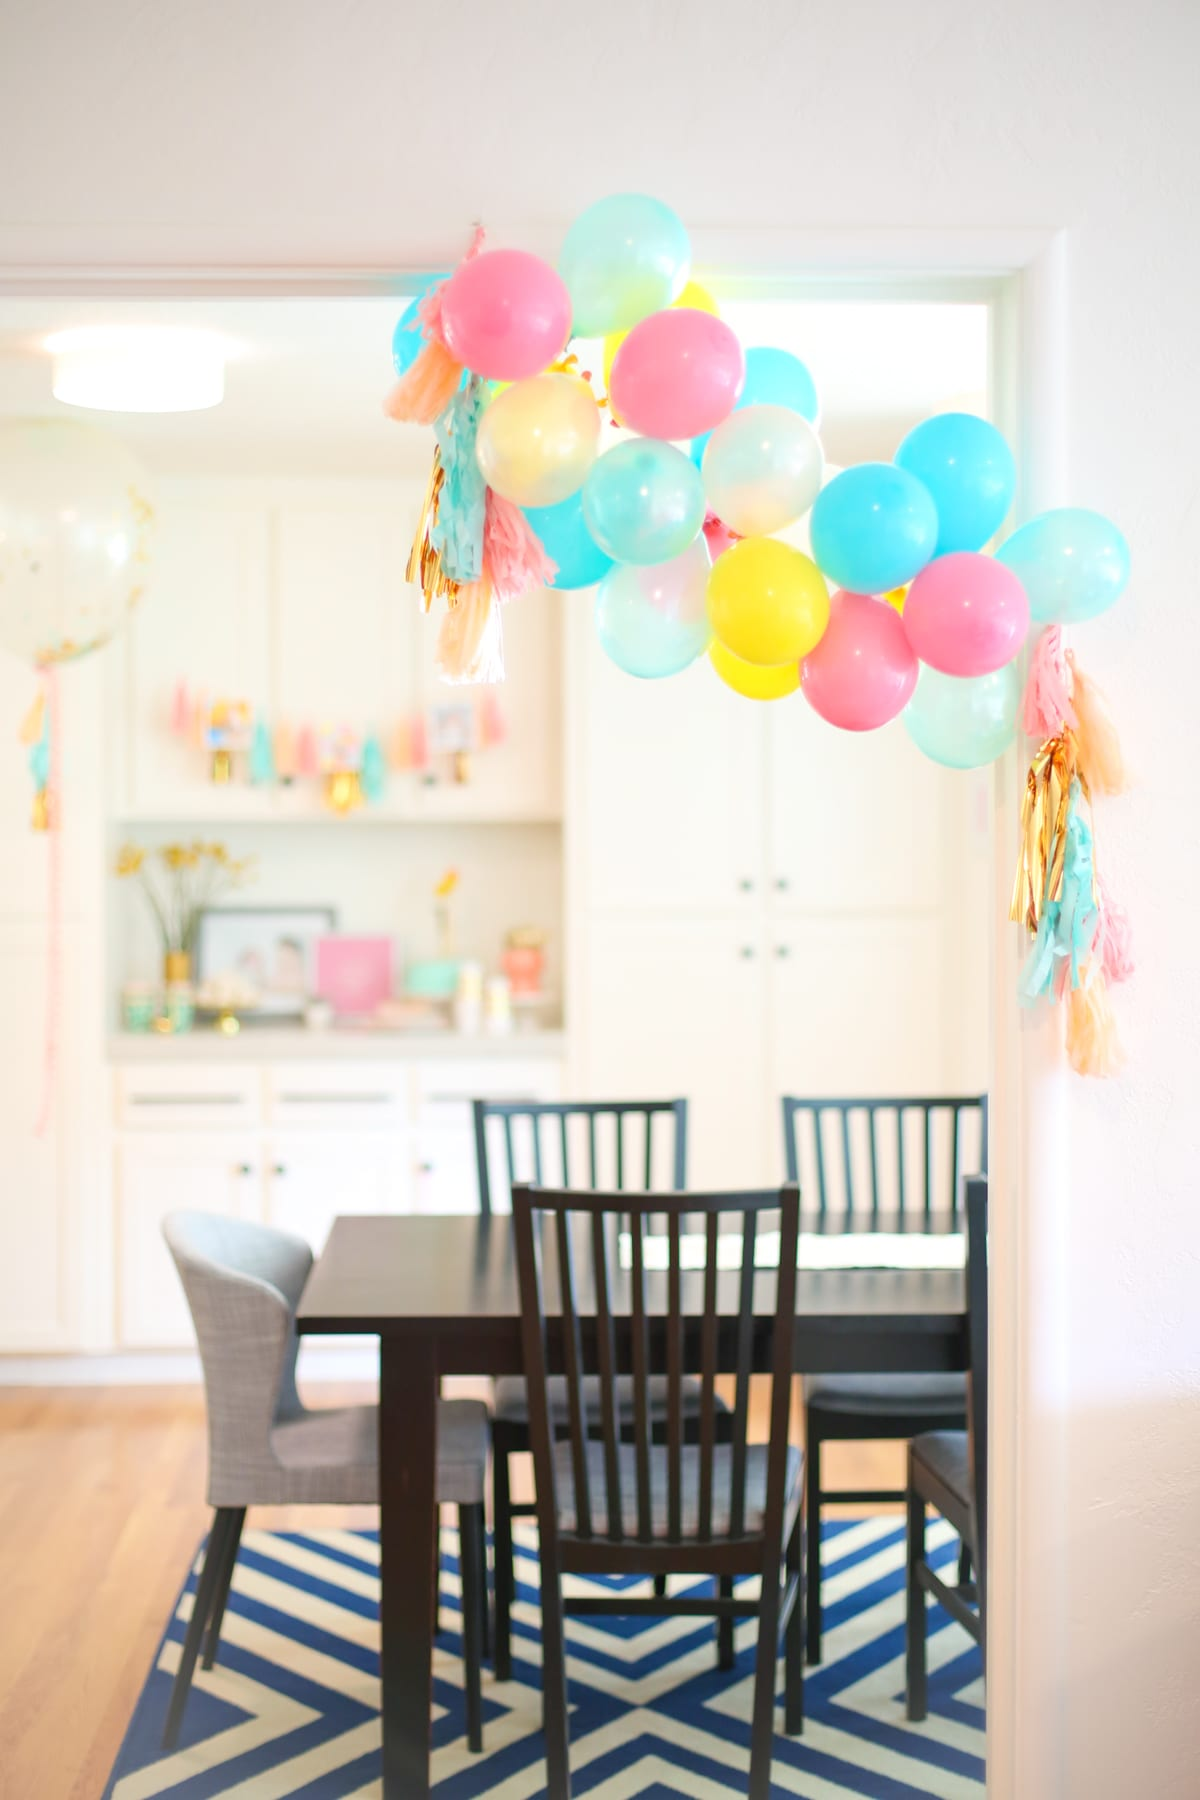 How To Make A Balloon Garland For A Birthday Party